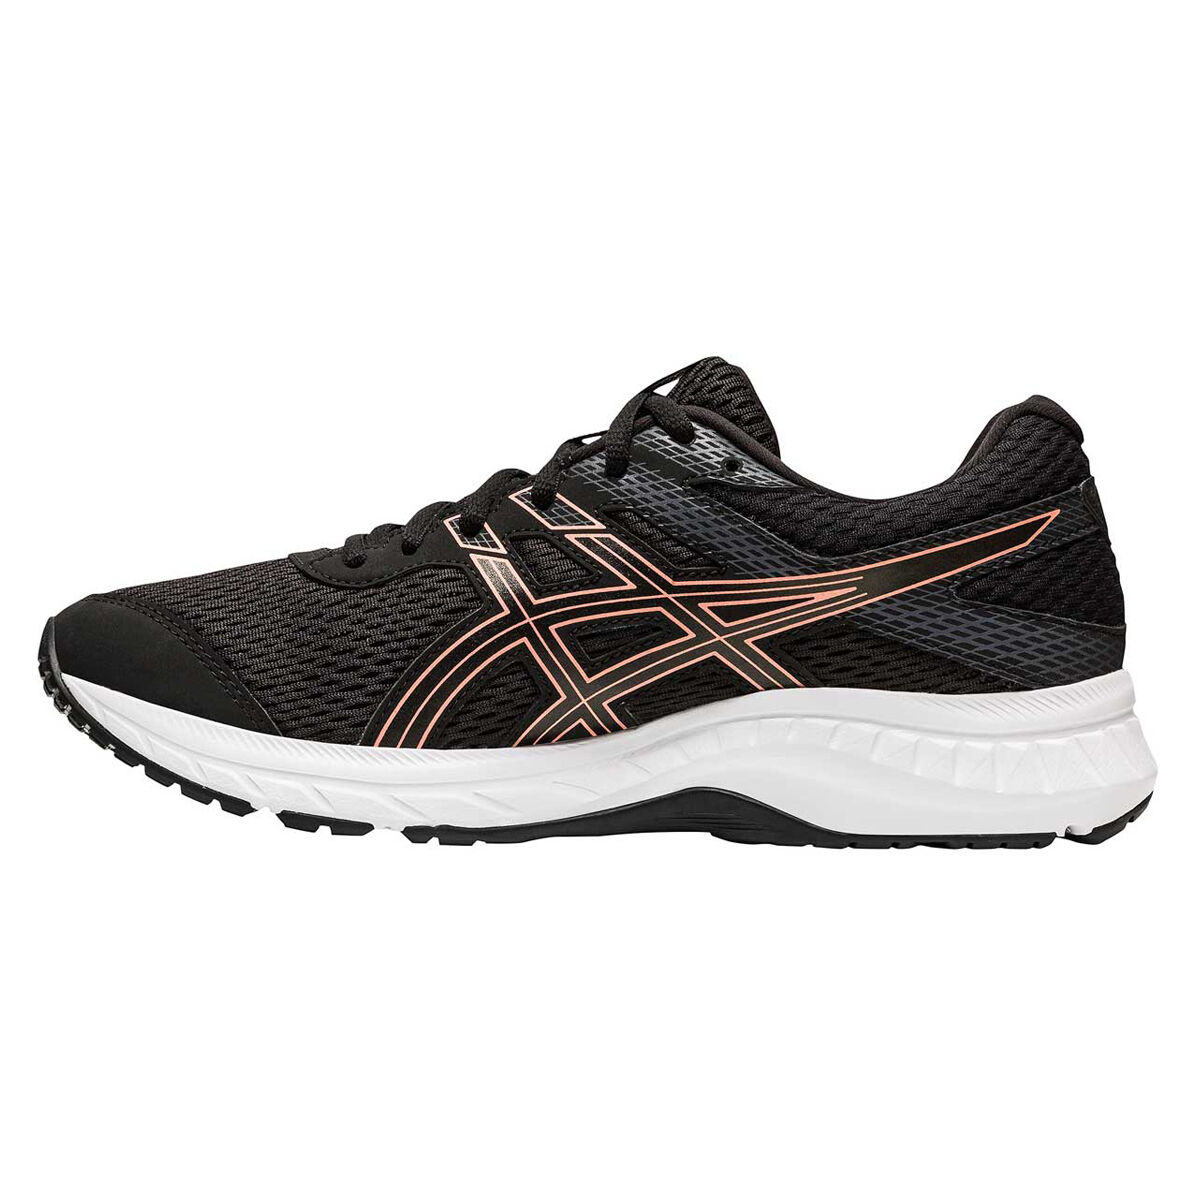 Womens Running Shoes Black/Rose Gold